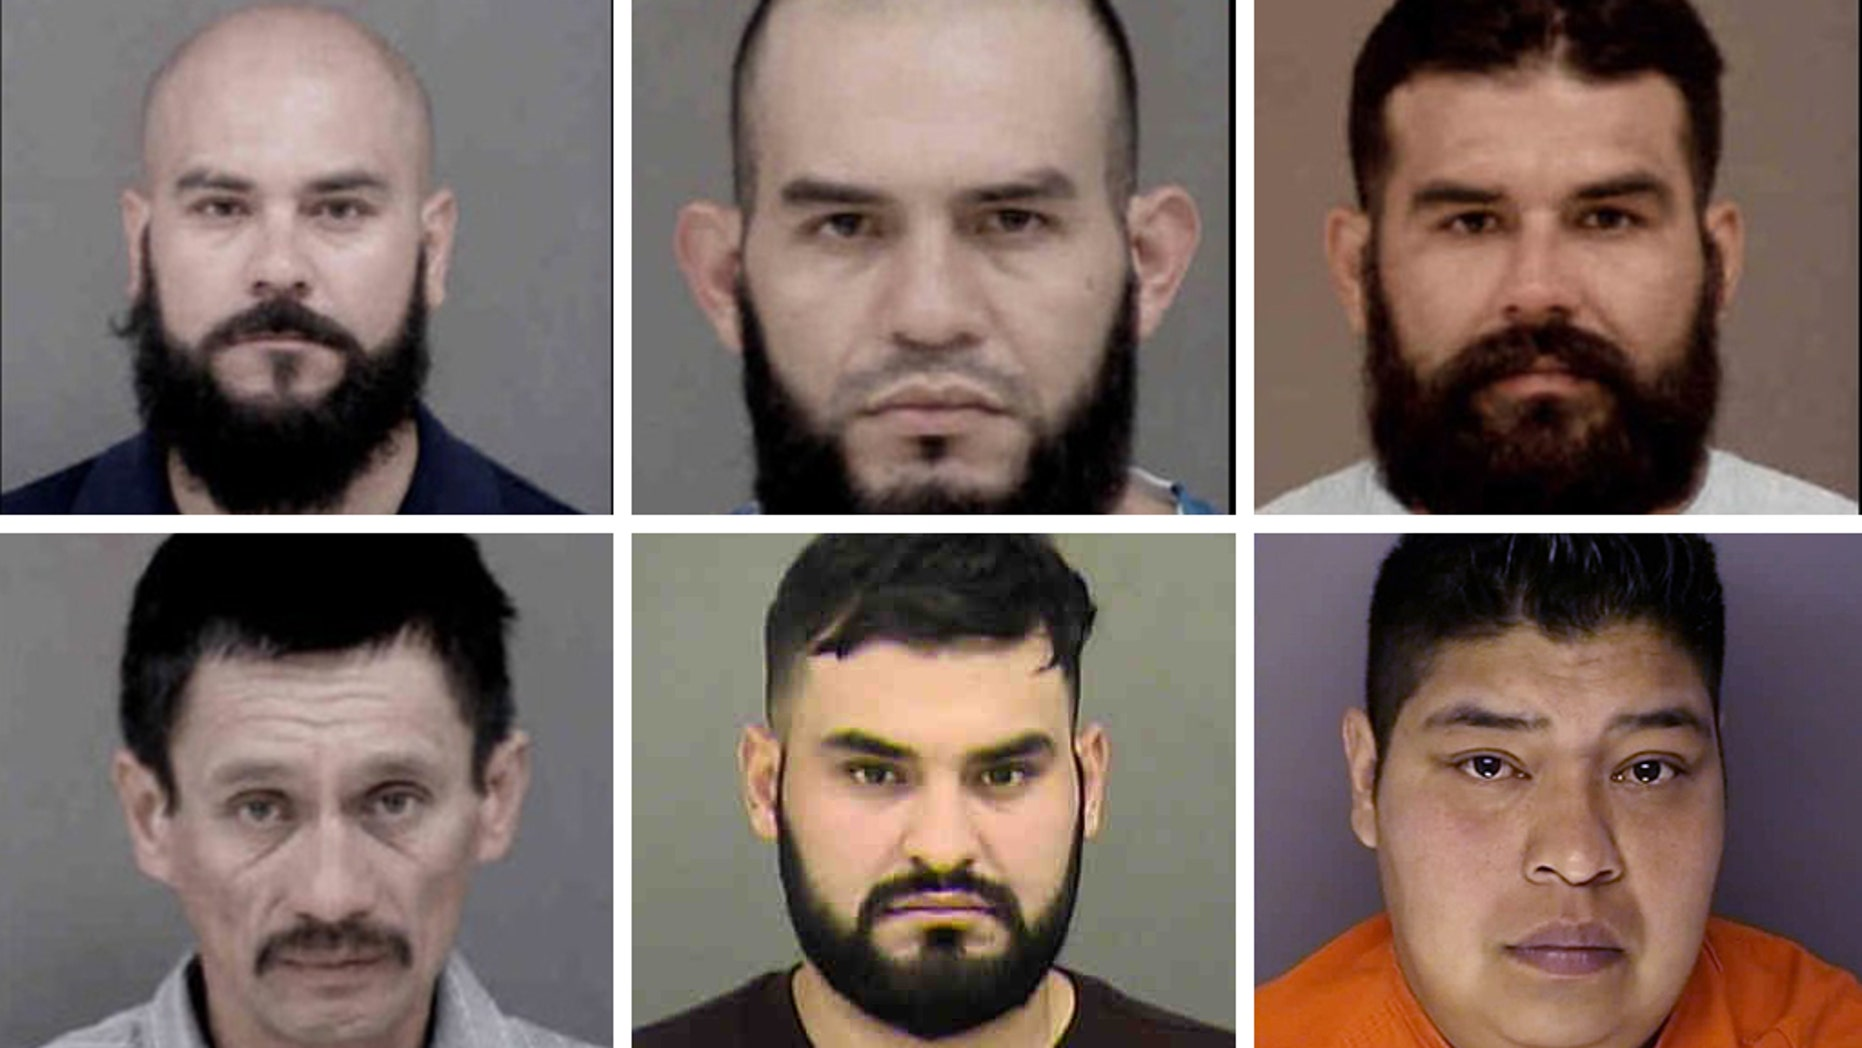 A massive drug operation with ties to a Mexican drug cartel resulted in the arrest of six immigrants in the country illegally. From left to right, upper row: Oscar Rangel-Gutierrez, Raul Rangel-Gutierrez, Regulo Rangel Gutierrez; lower row ( L to R) Rodolfo Martinez, Rigoberto Rangel-Gutierrez and Francisco Garcia-Martinez.